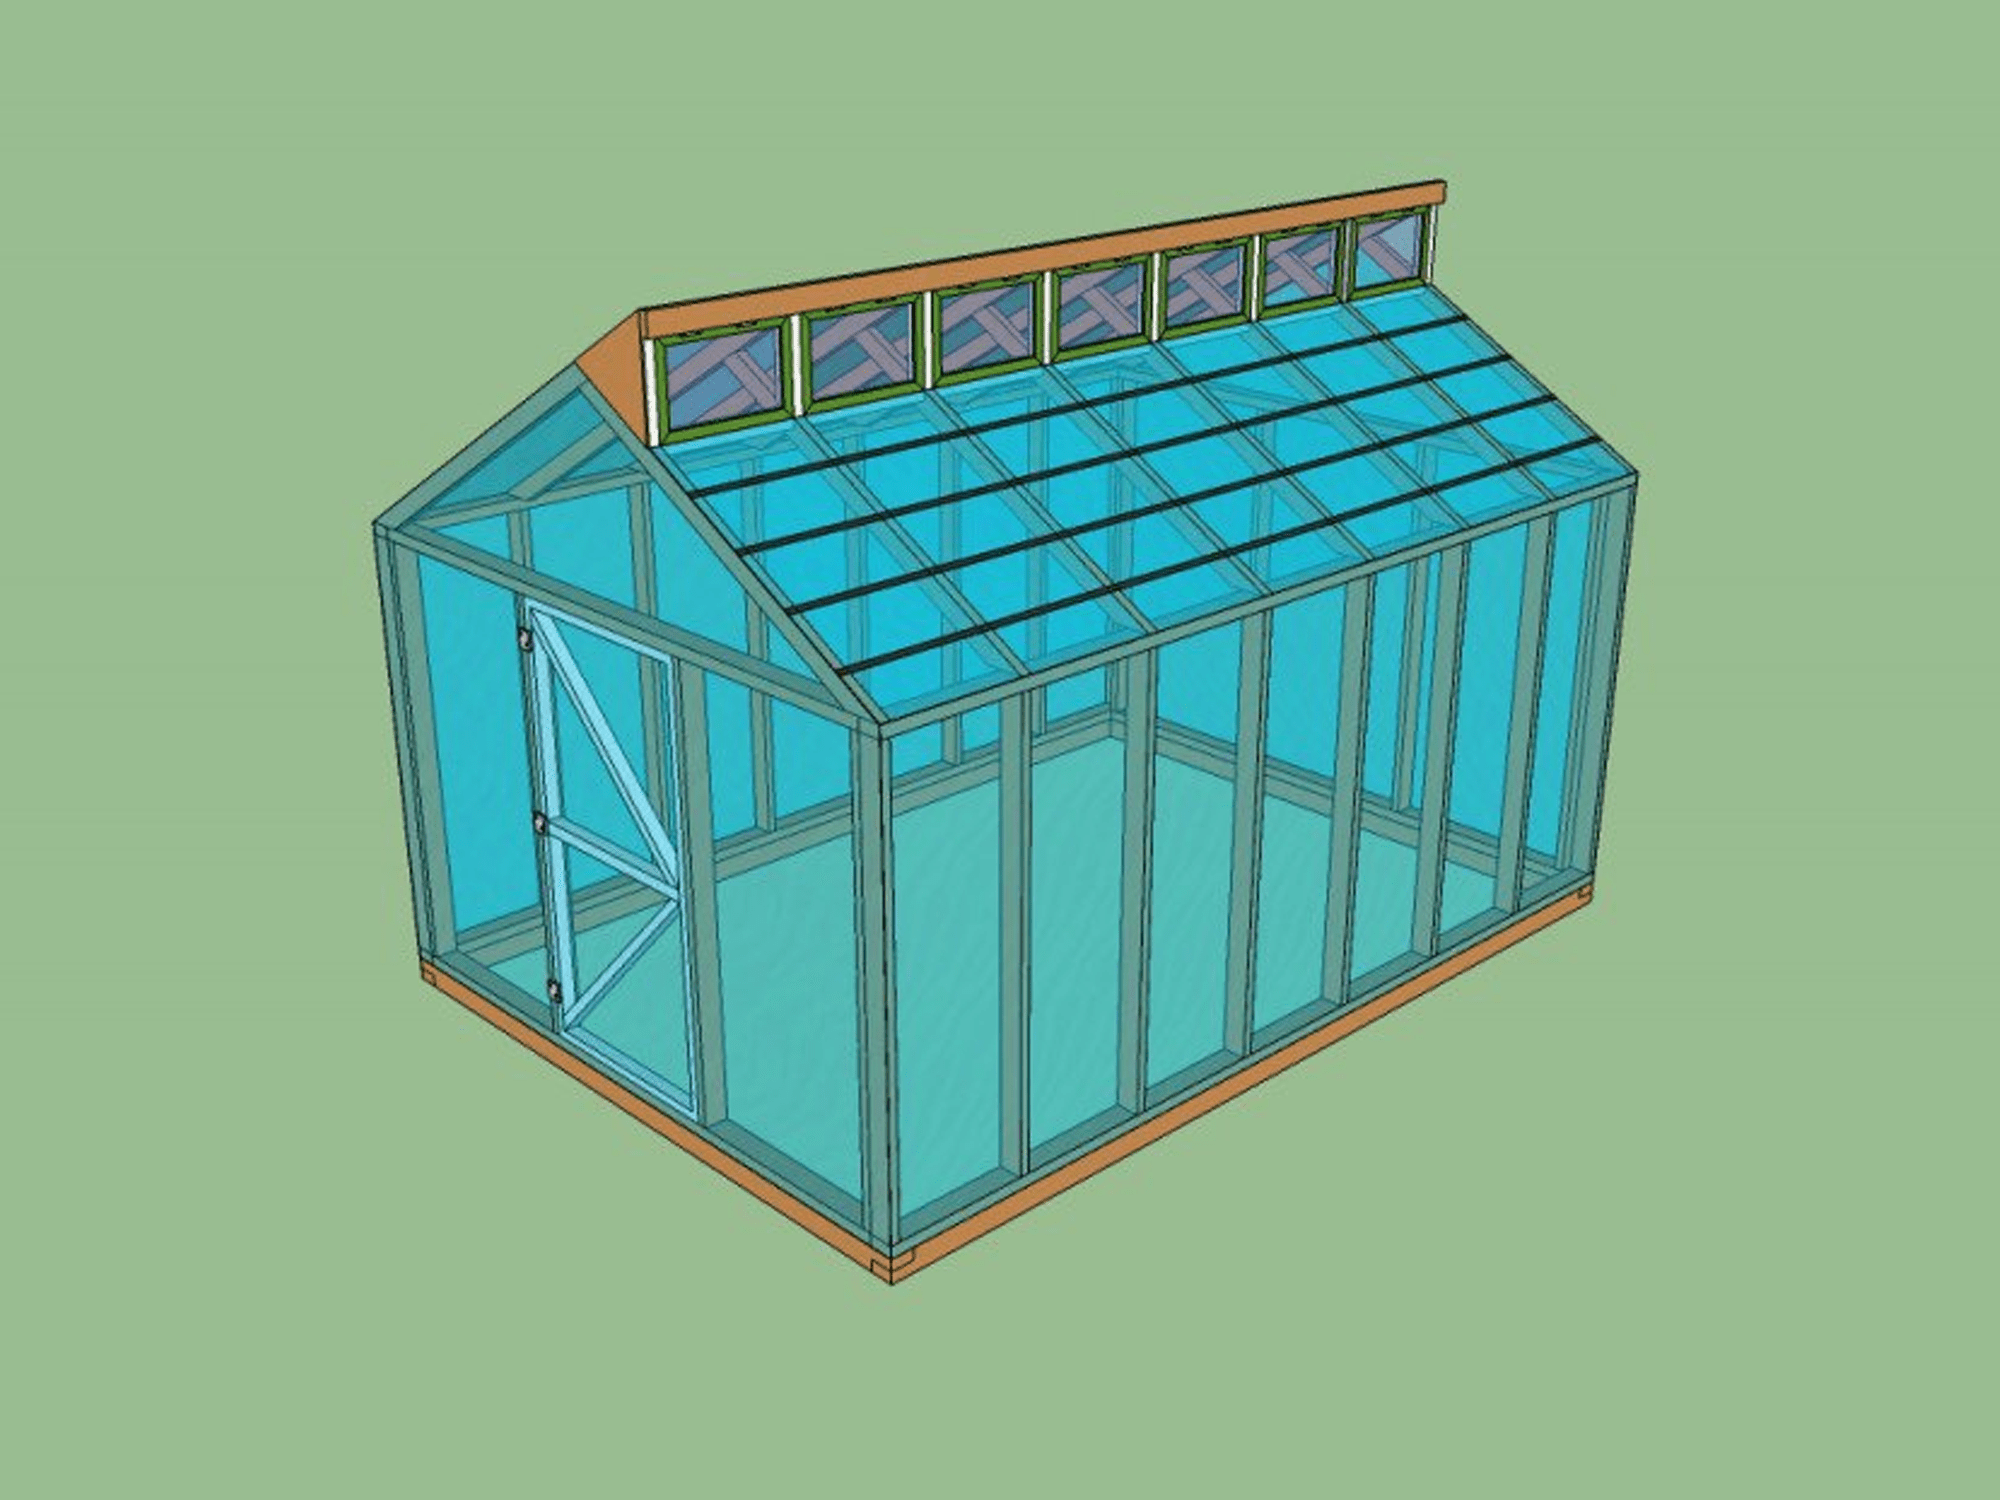 13 Free DIY Greenhouse Plans Greenhouse Plans Window Design on square foot gardening plans, a-frame cabin plans, window home, window greenhouse ideas, window pane greenhouse, window frame greenhouse, window box greenhouse,